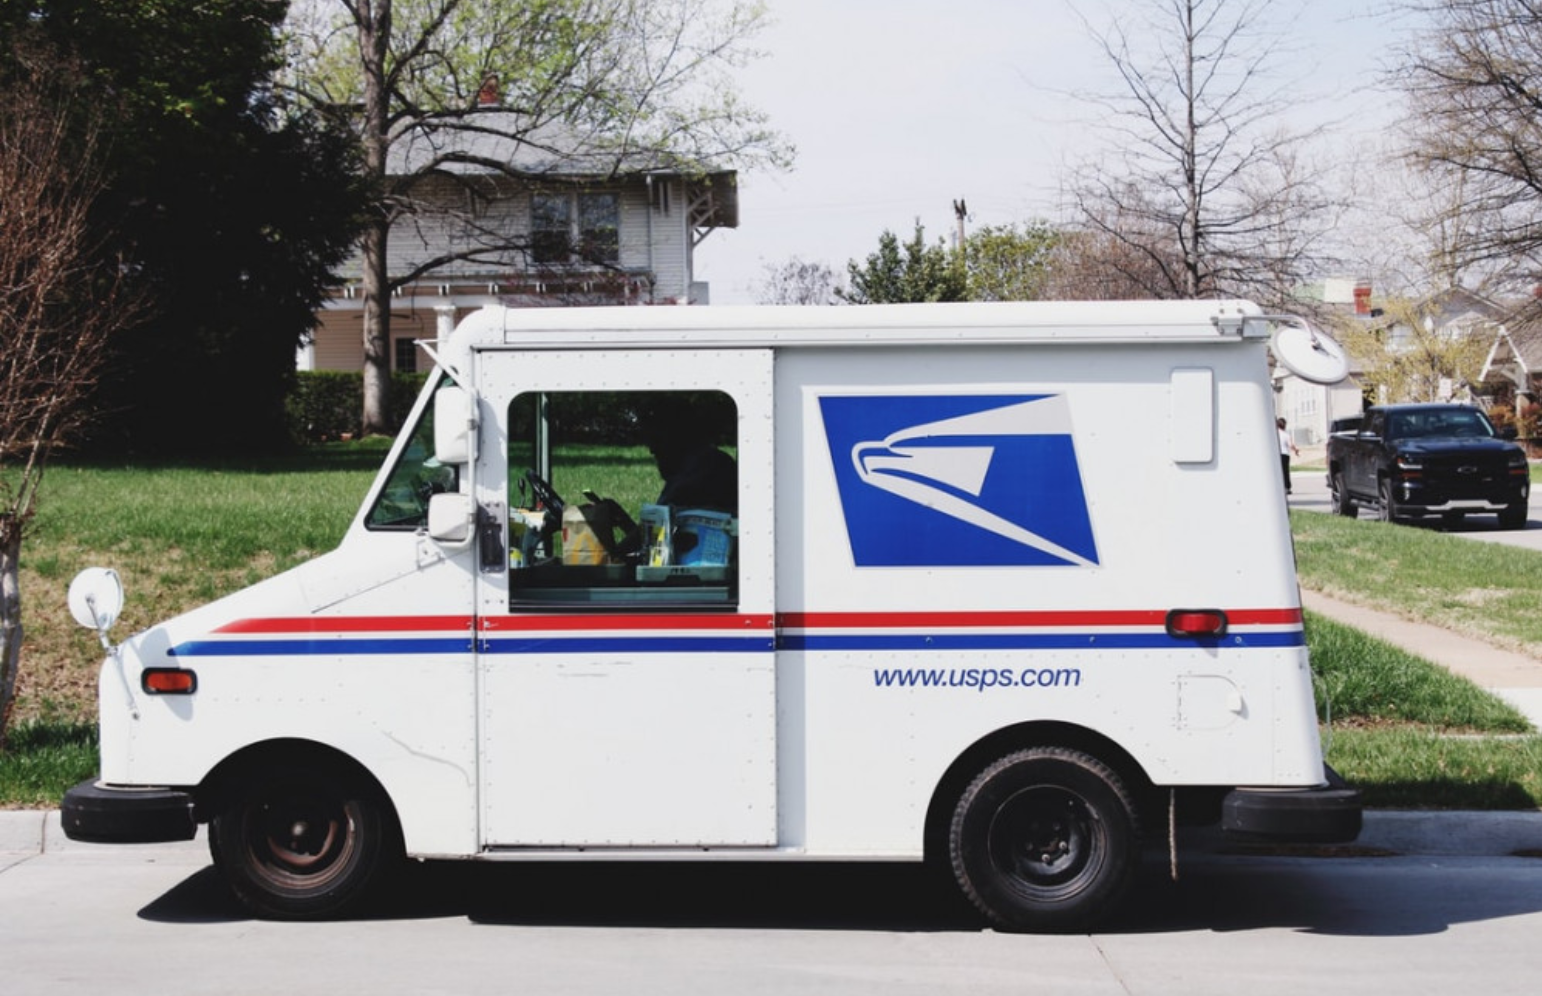 How Do I Find Out What Time My Mail Comes? - USPS Mail Carrier Van